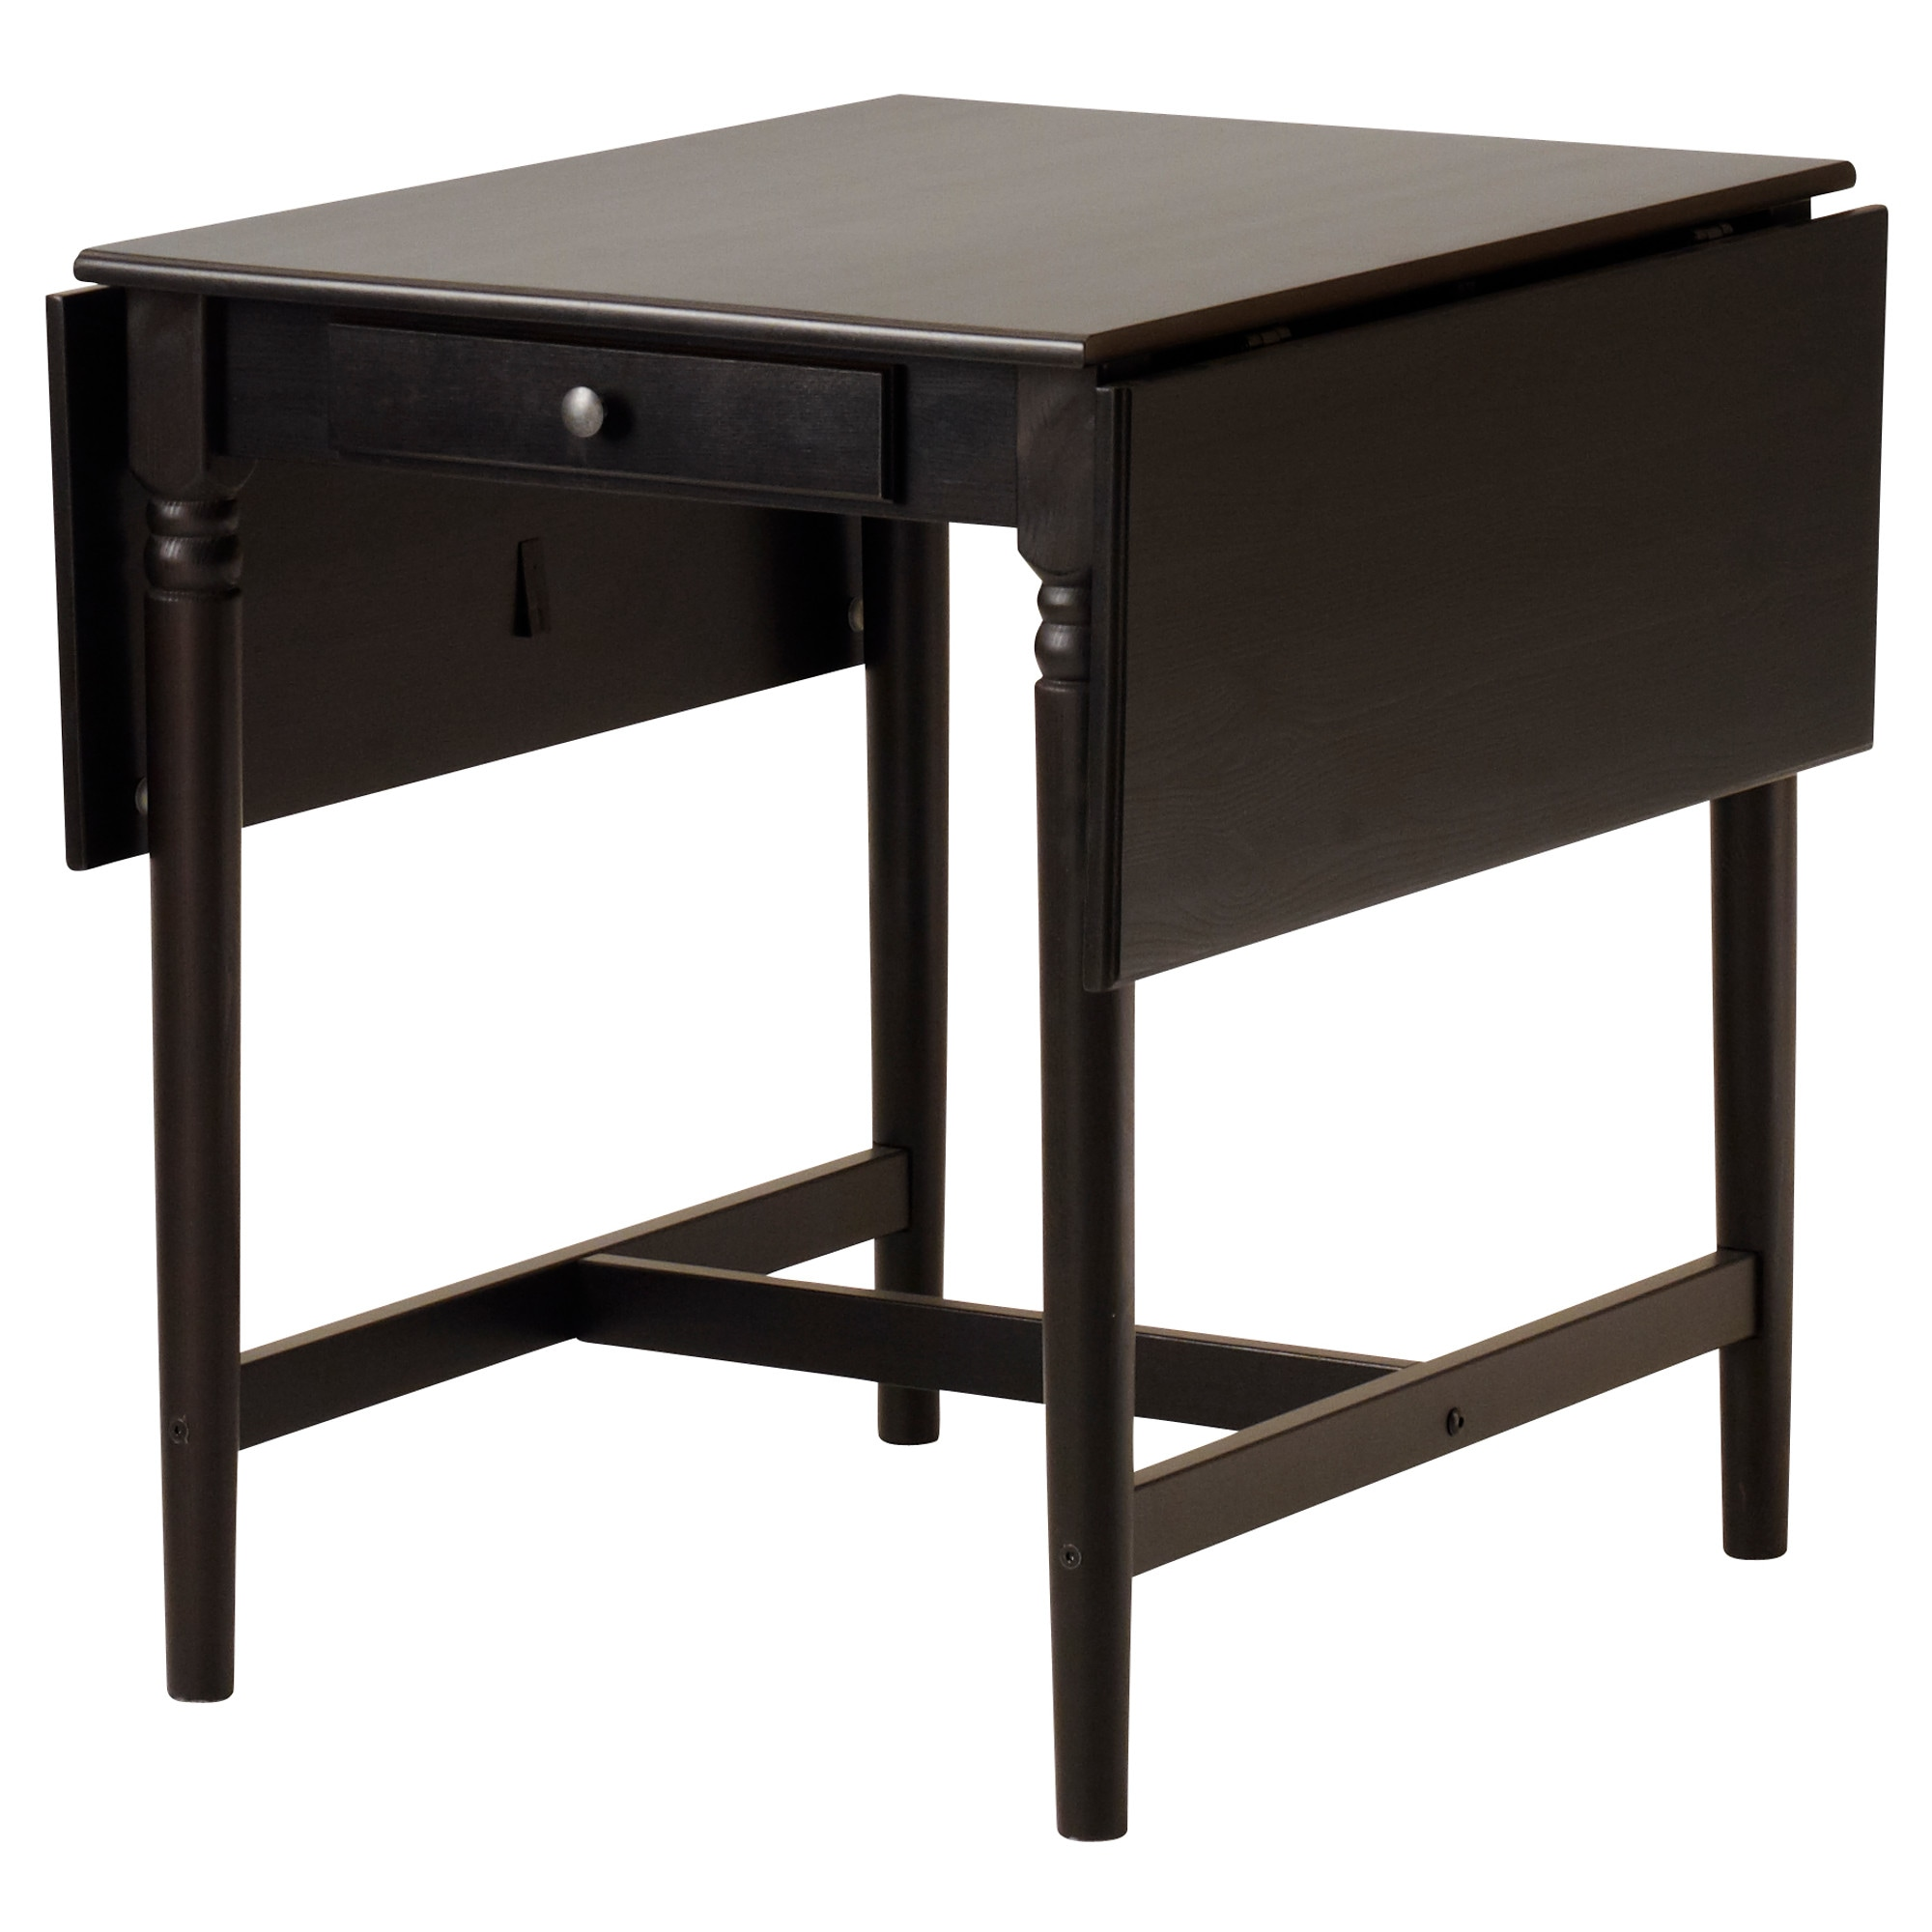 Ikea Folding Dining Table ingatorp drop-leaf table - ikea